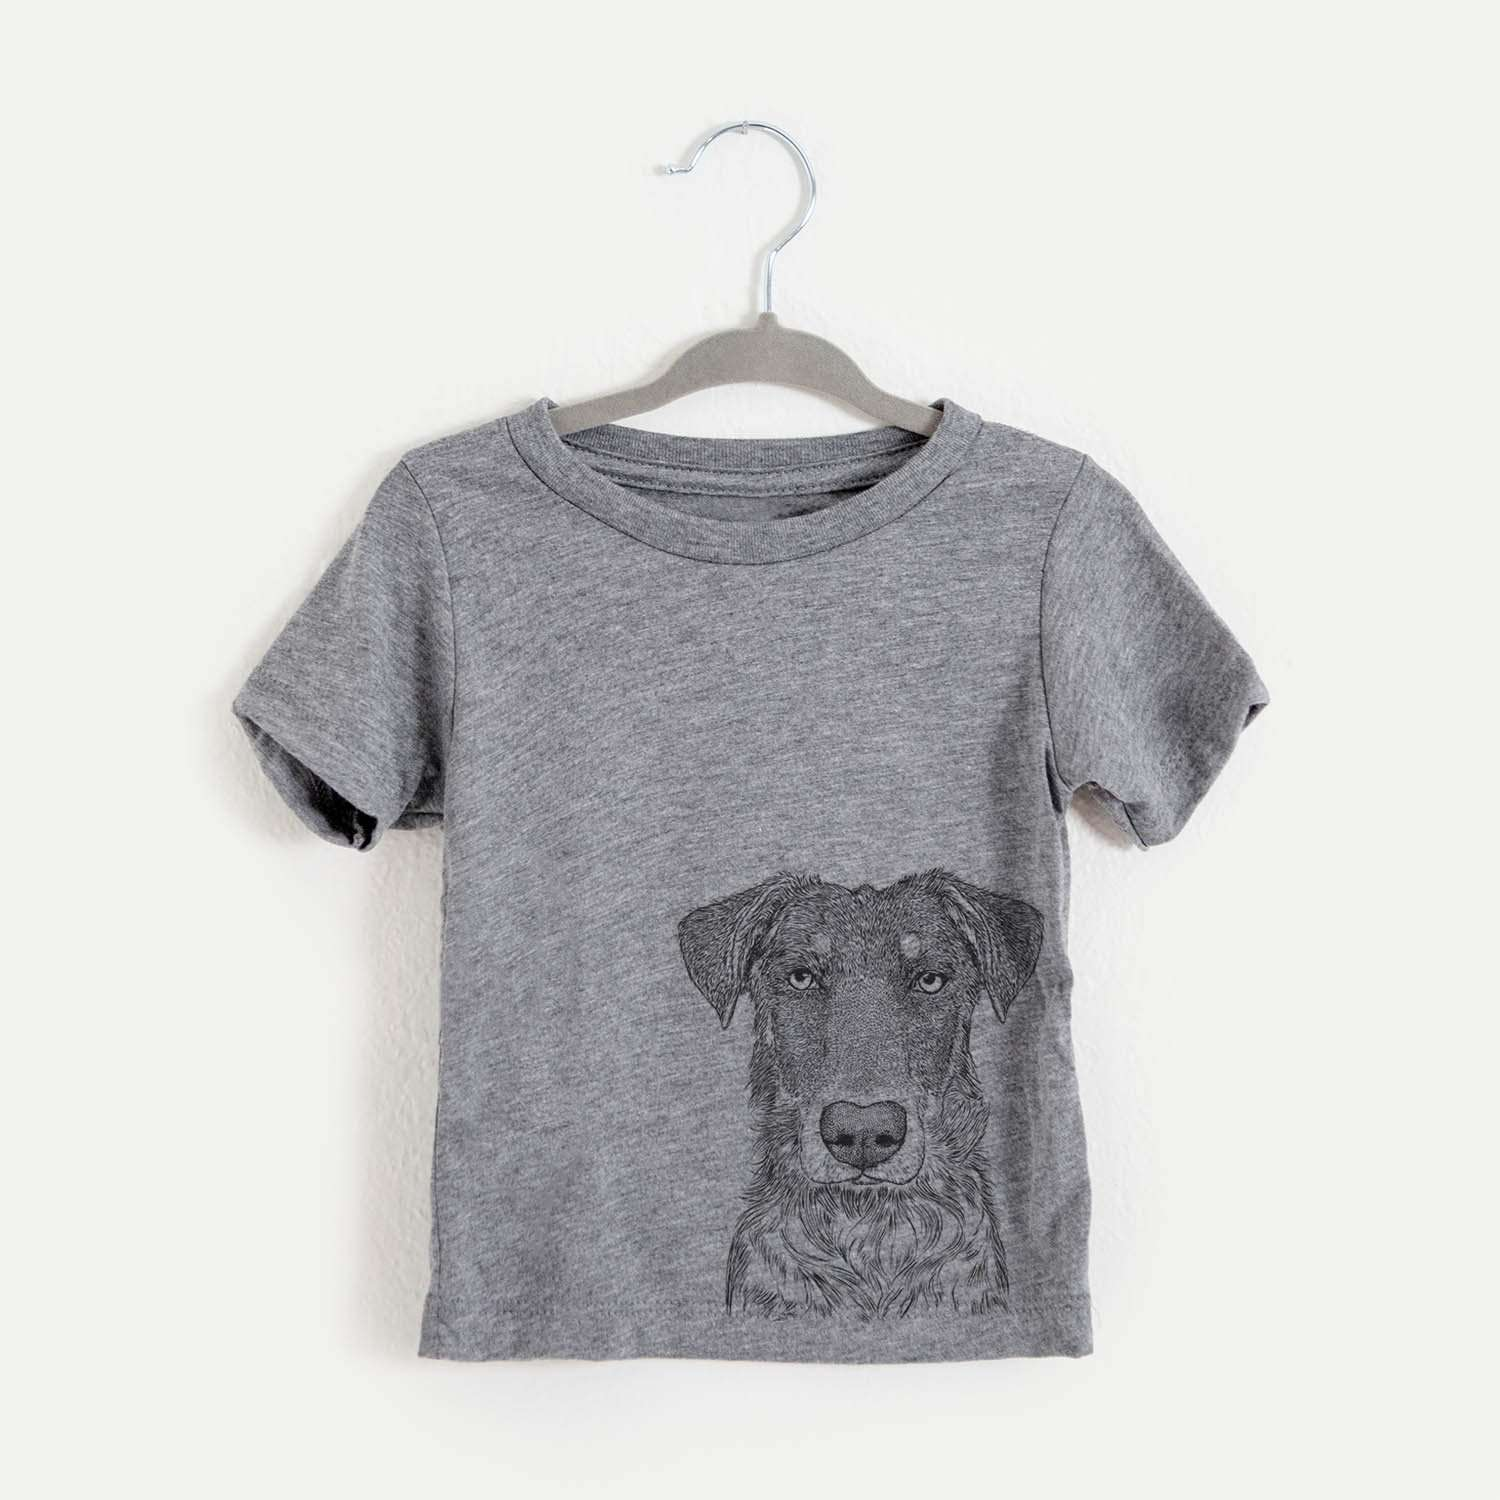 Wesson the Beauceron - Kids/Youth/Toddler Shirt